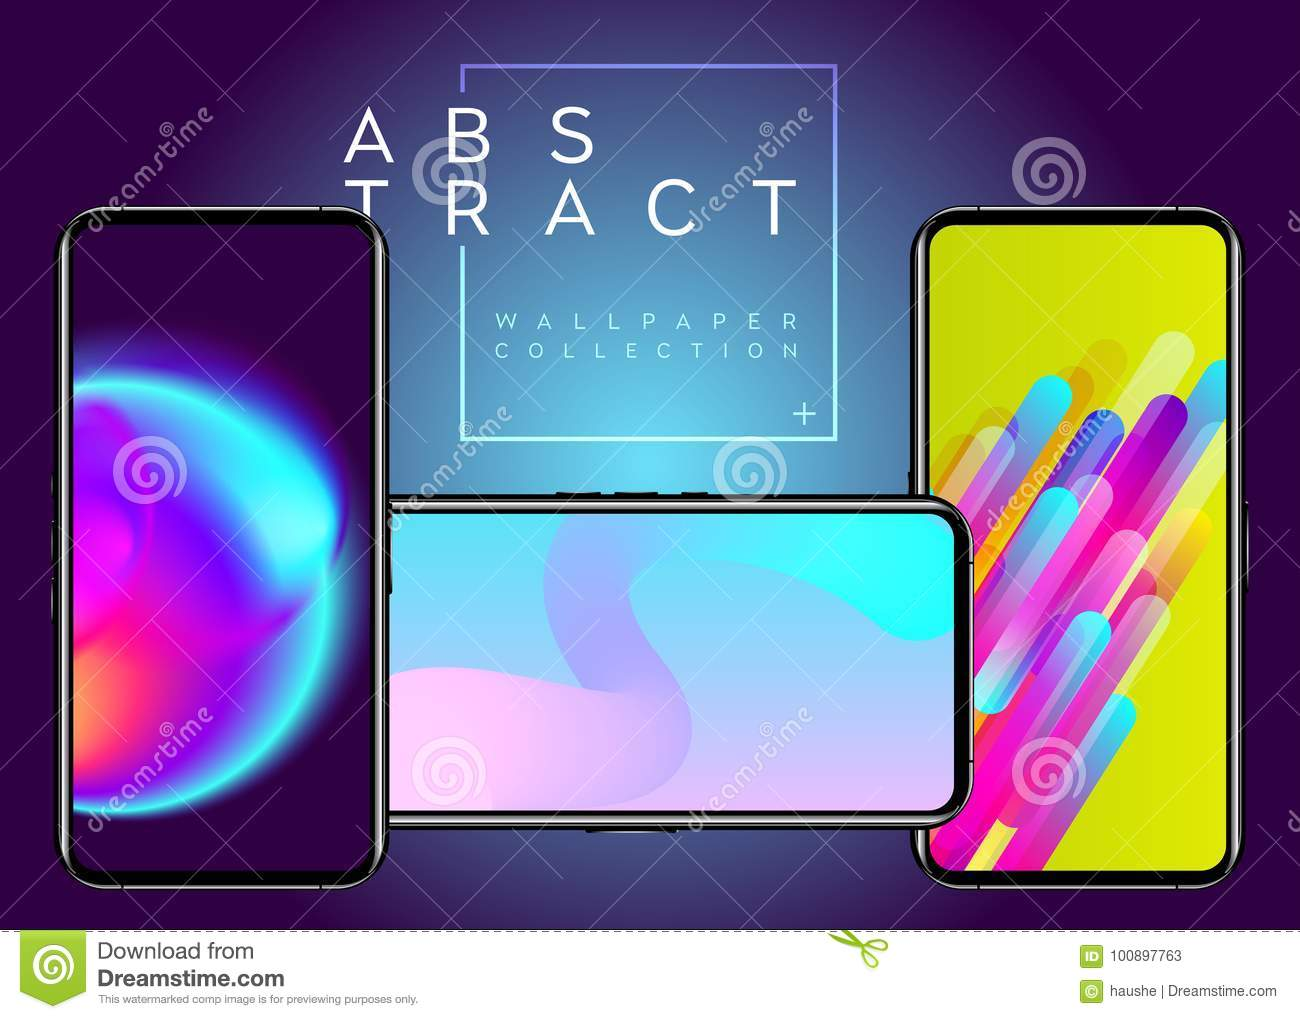 Phone Abstract Futuristic Wallpaper Collection Stock Vector